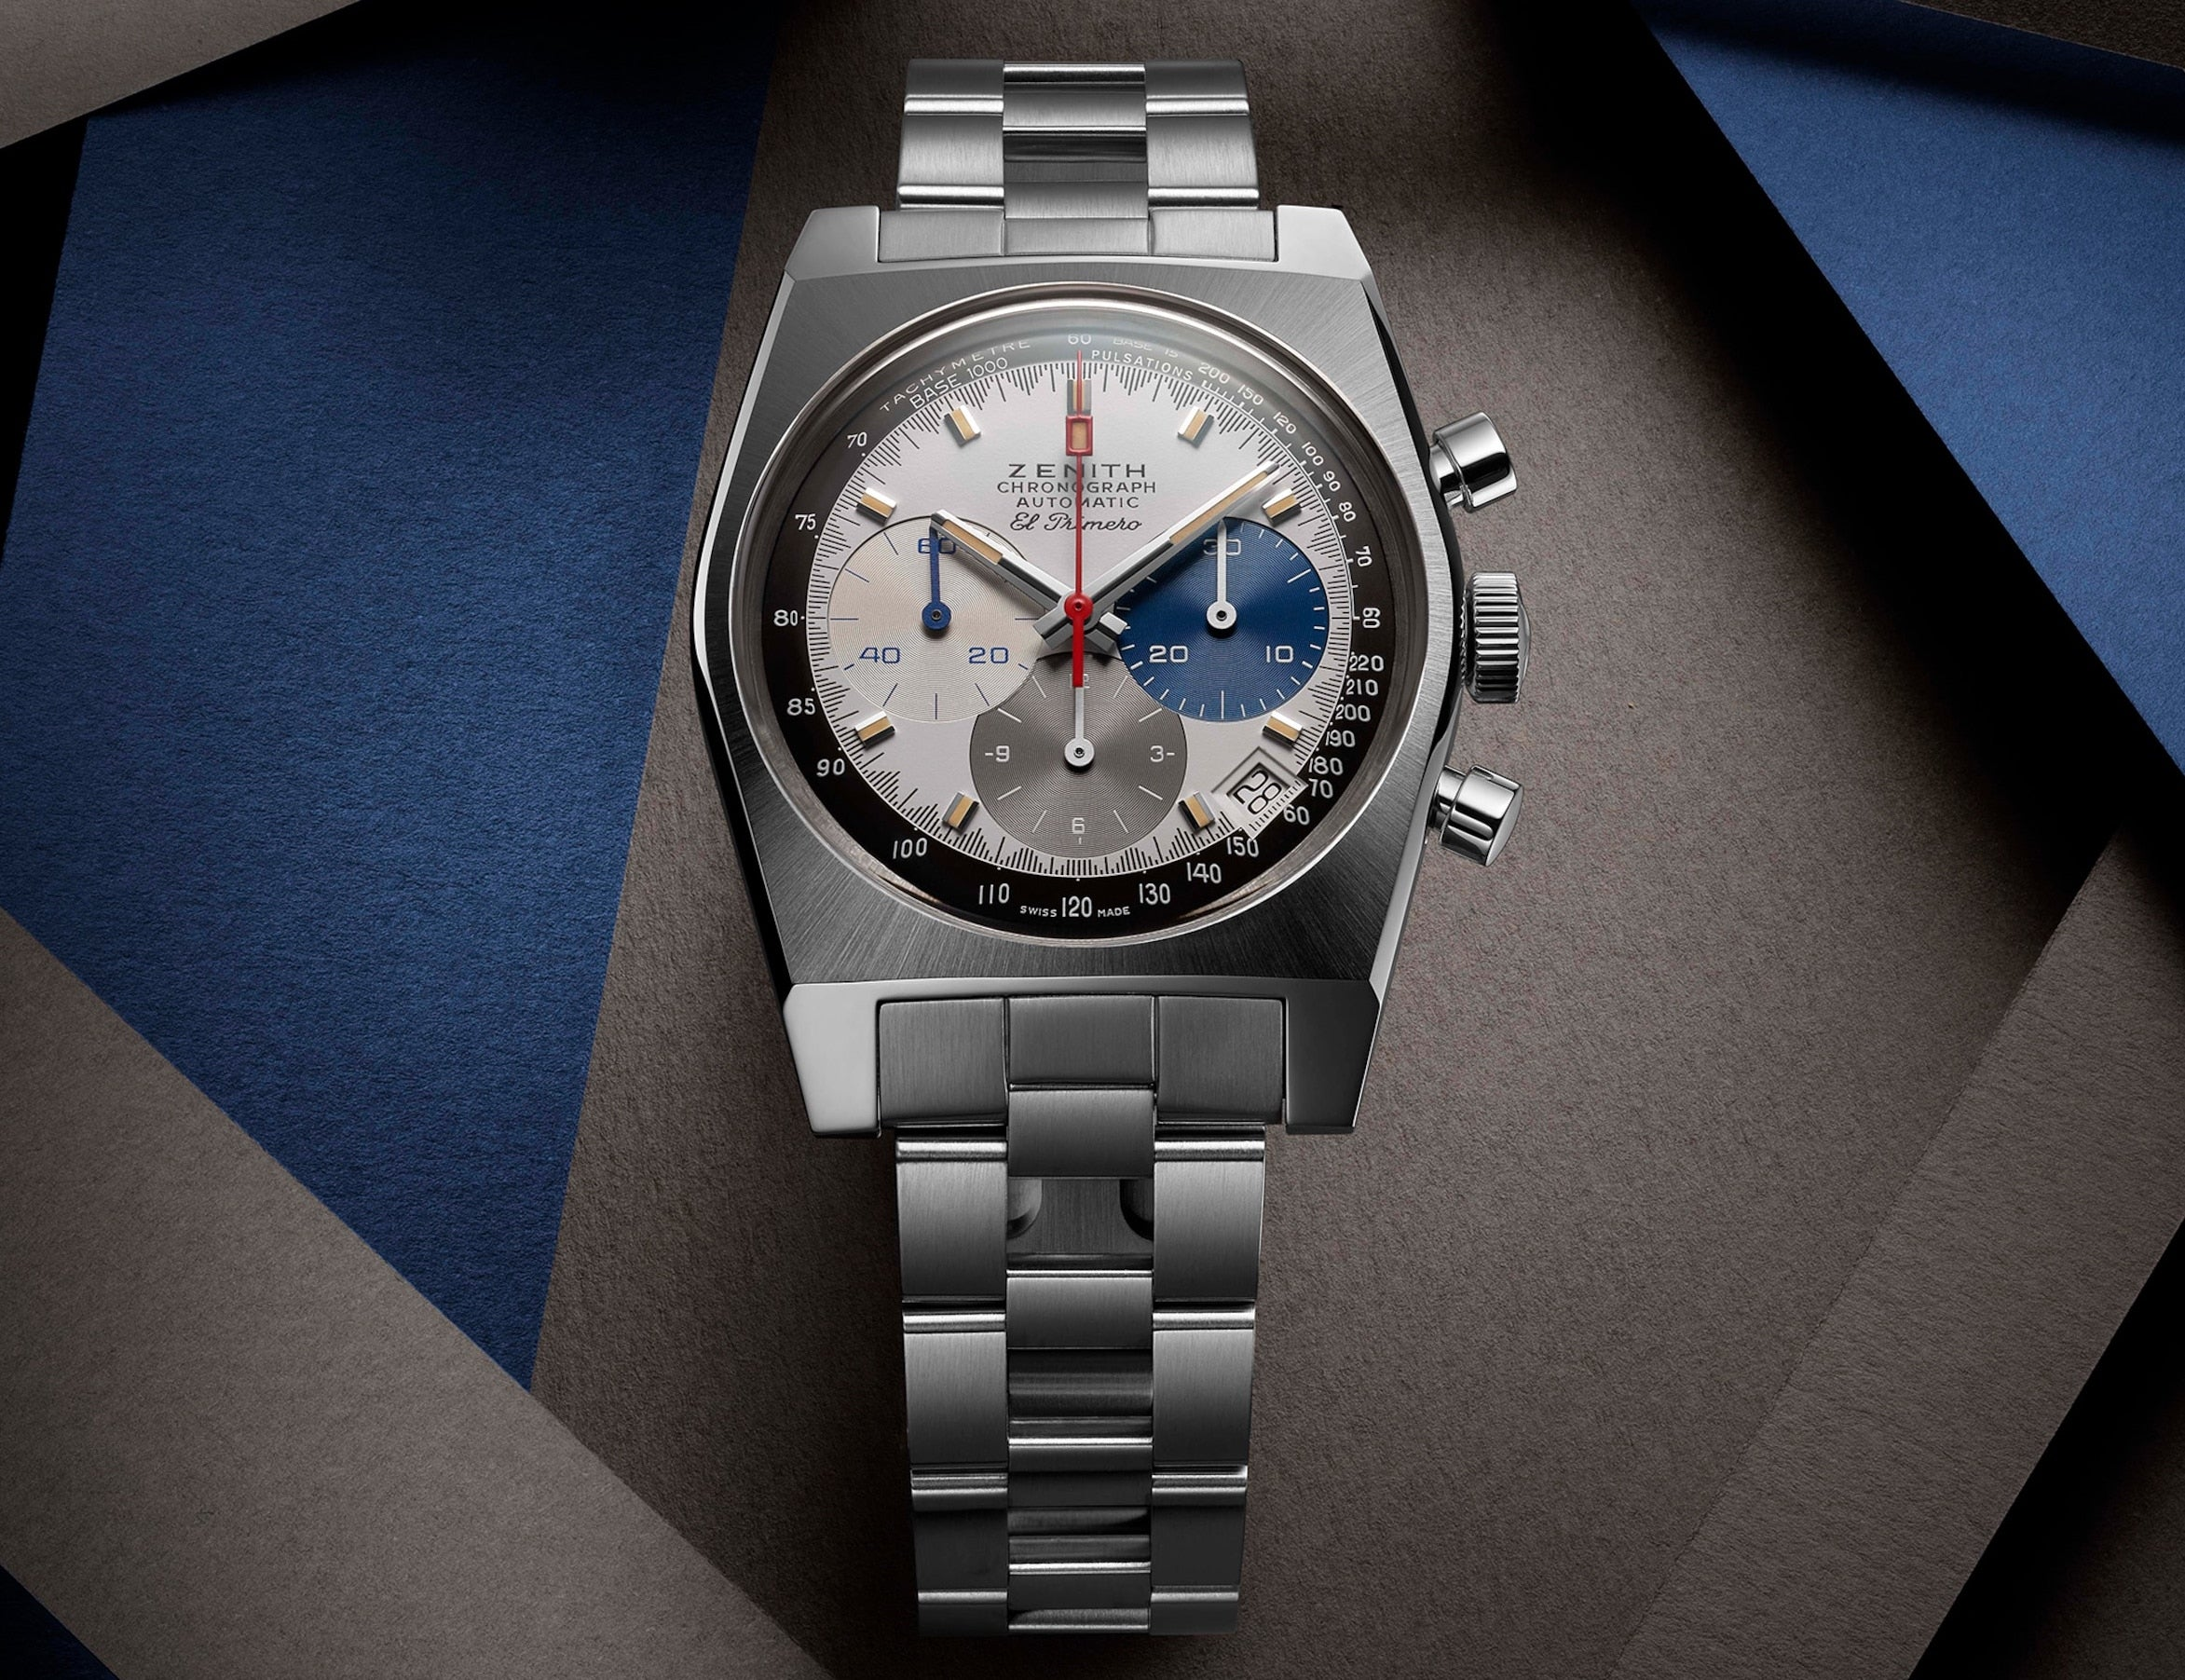 BACK TO 1971: ZENITH BRINGS BACK ONE OF THE MORE ELUSIVE HISTORICAL EL PRIMERO REFERENCES WITH THE CHRONOMASTER REVIVAL A3817